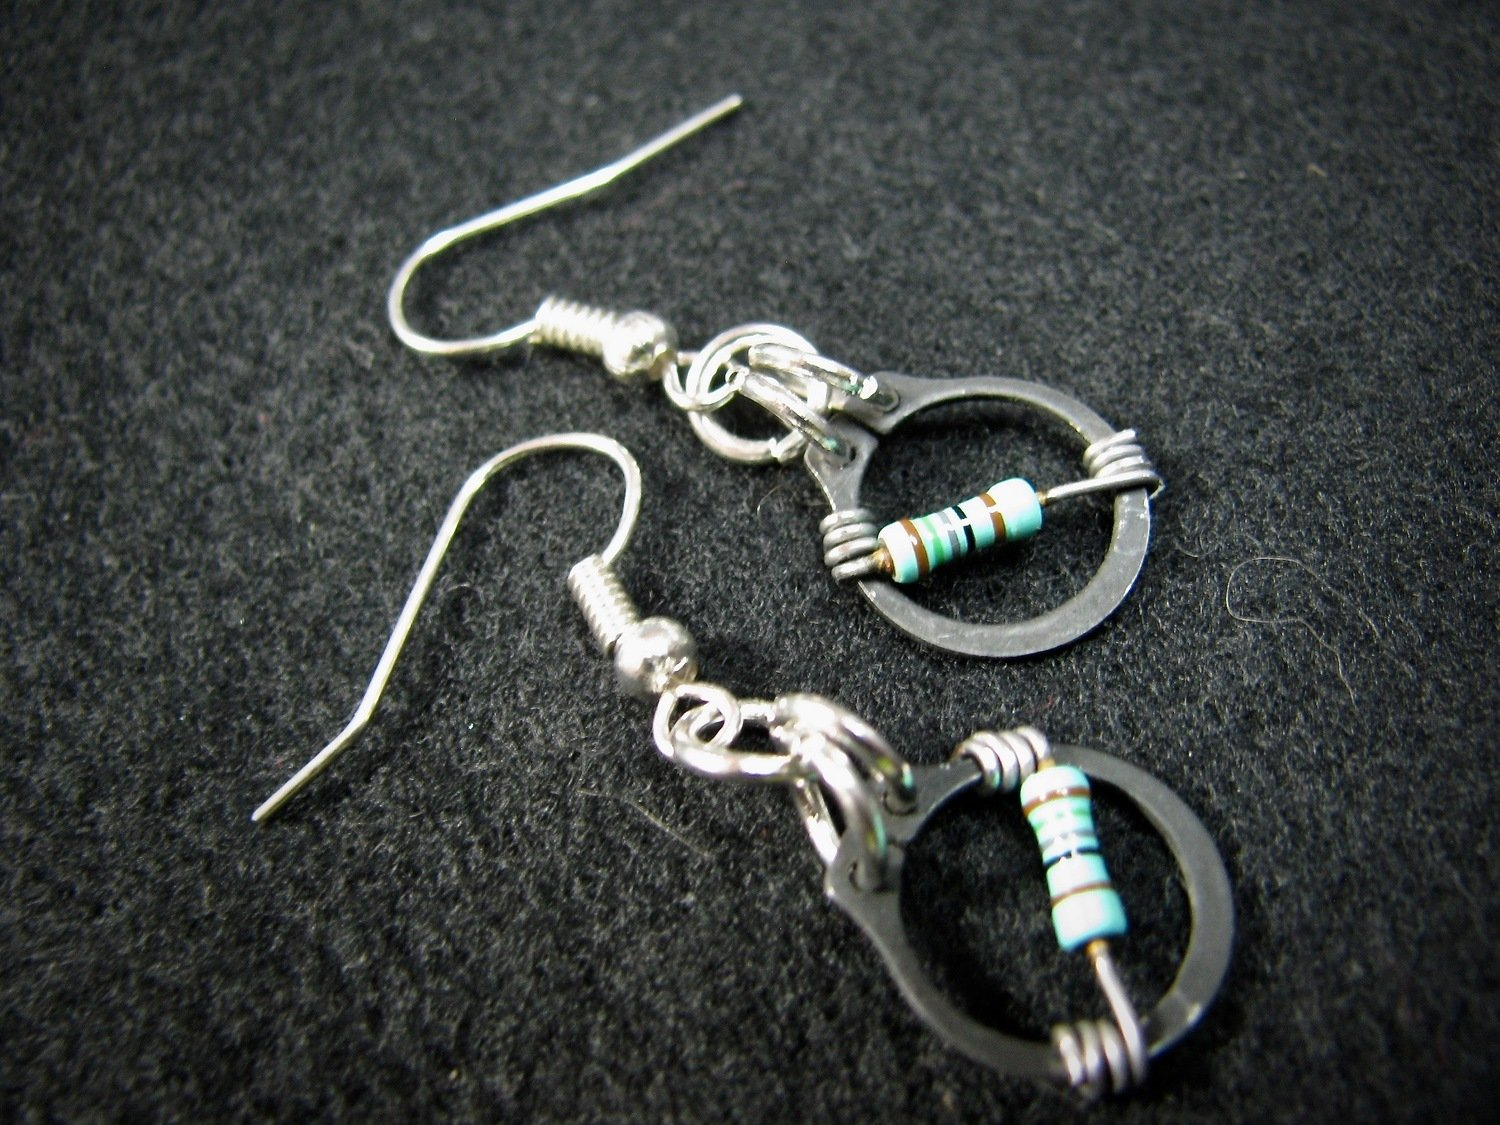 O Clamp Earrings with Resistors